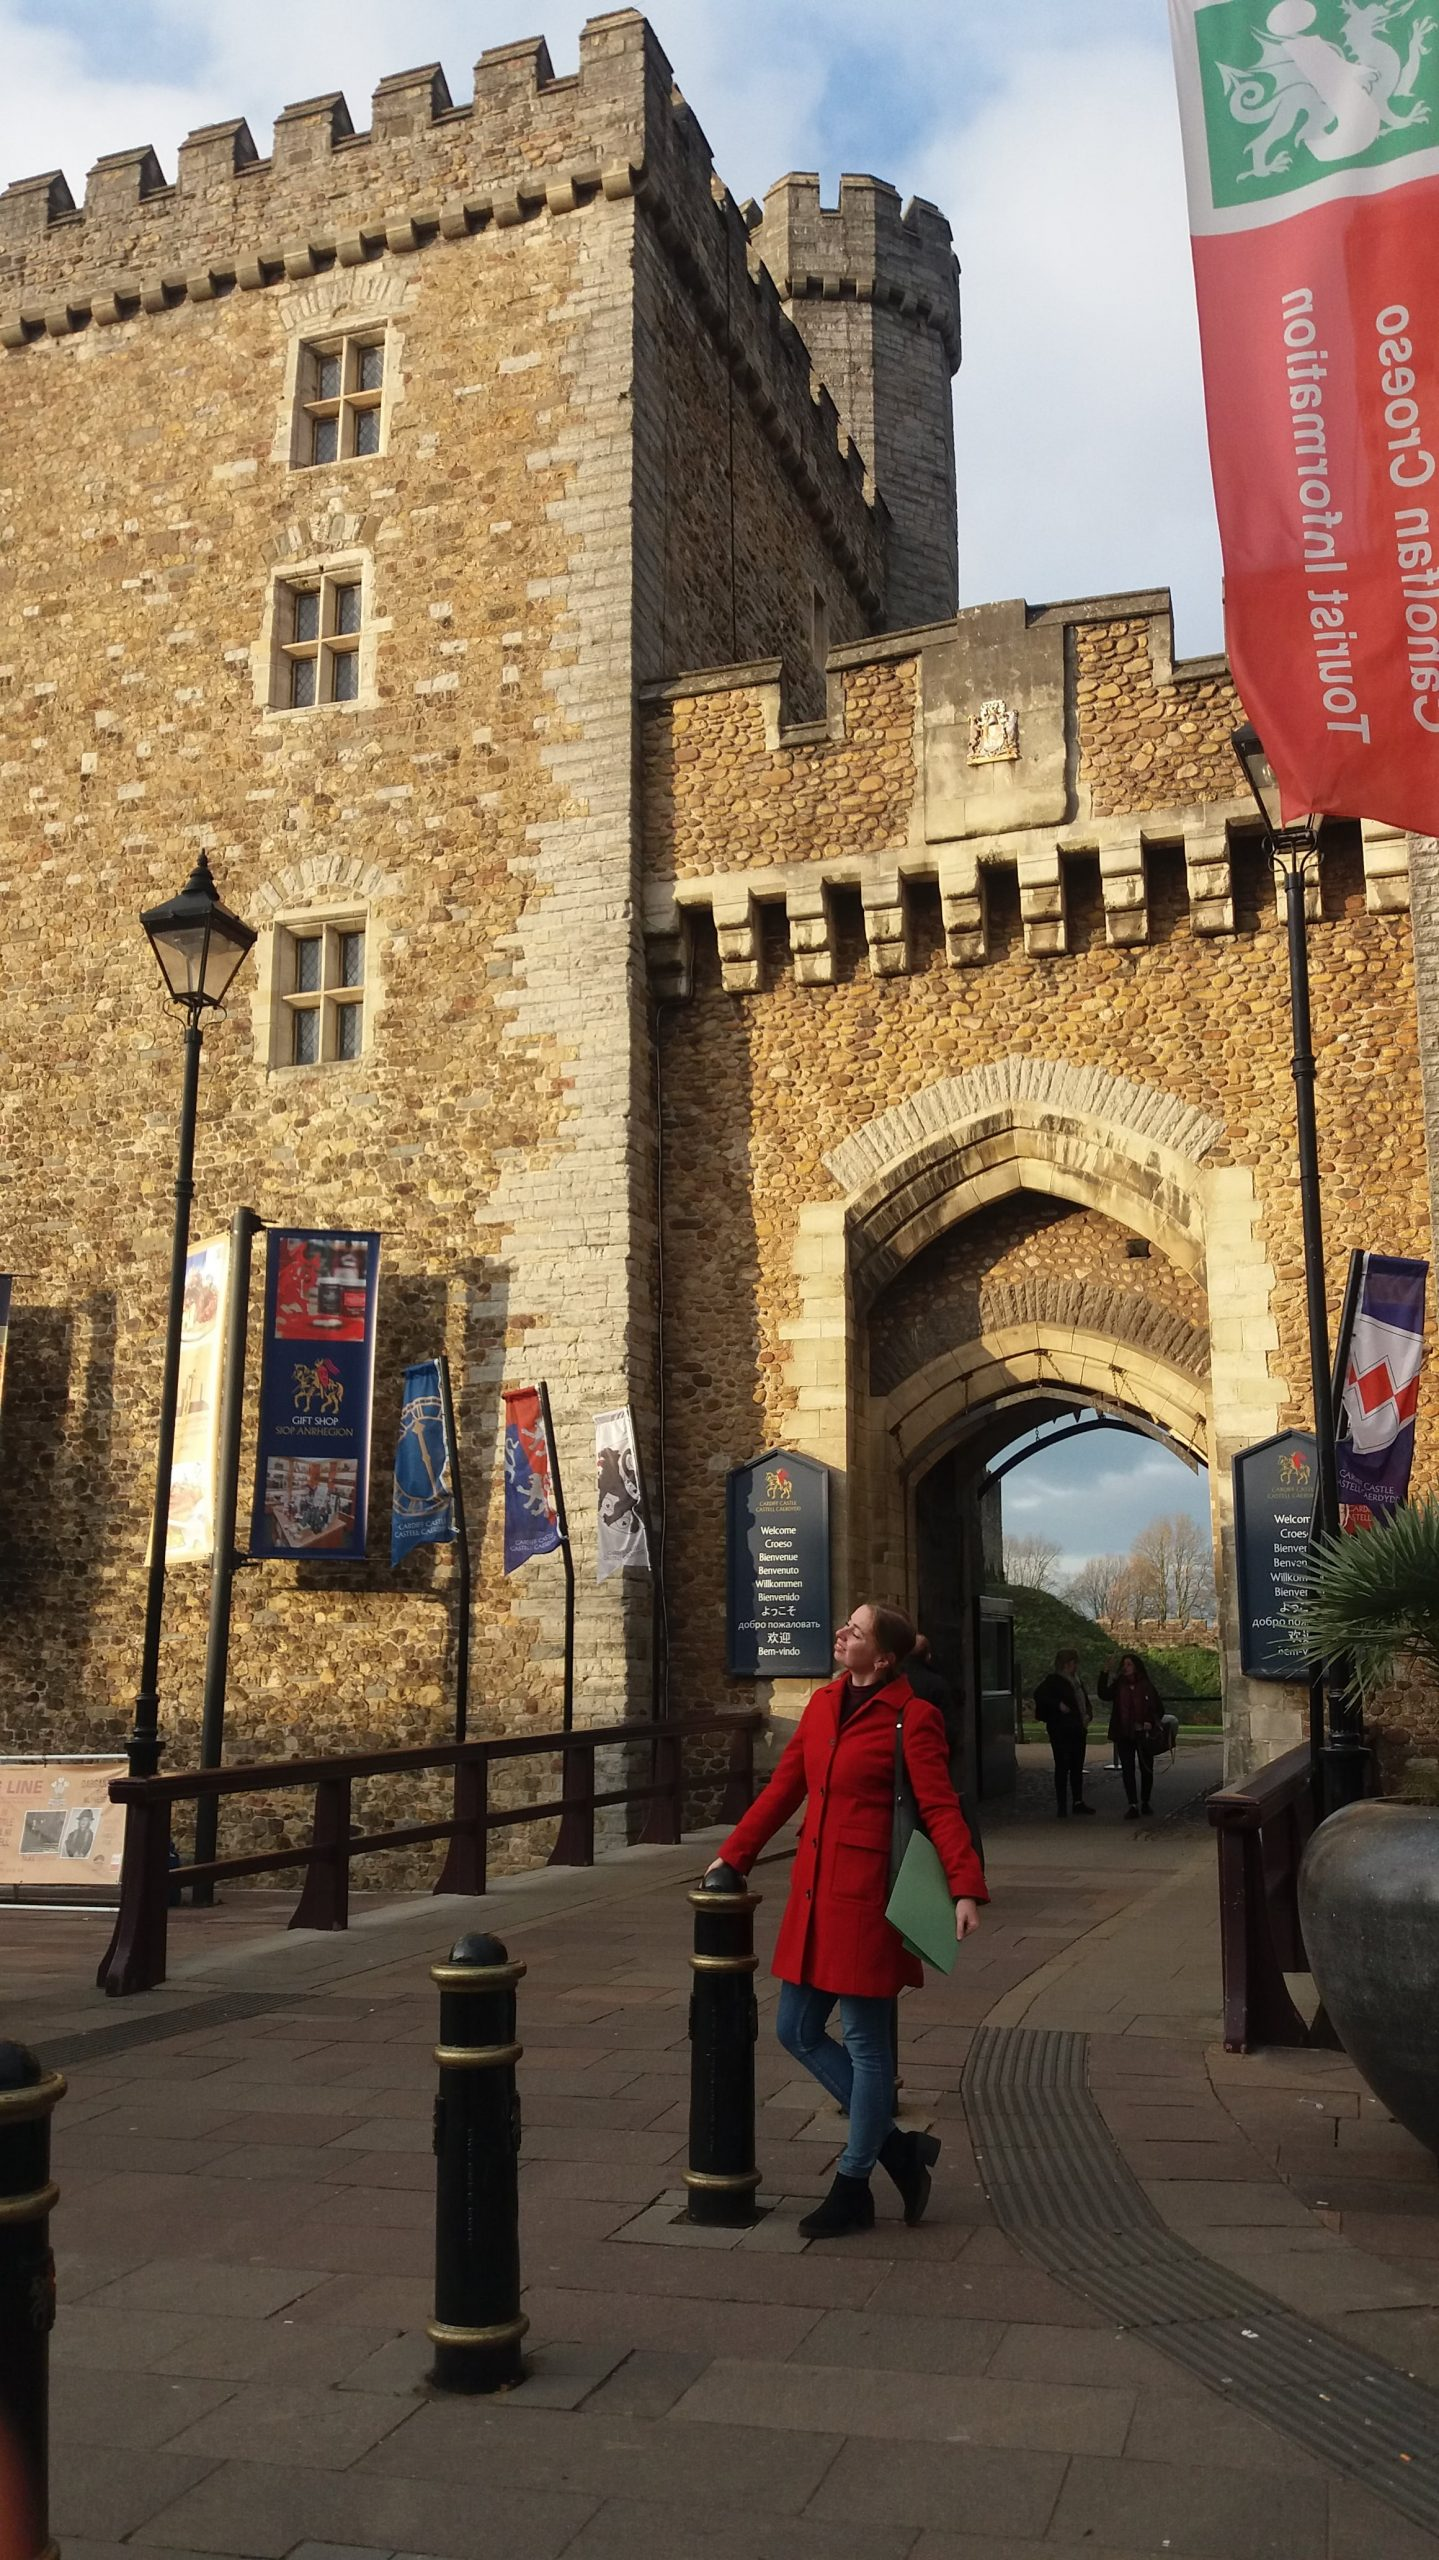 Jitka at Cardiff Castle